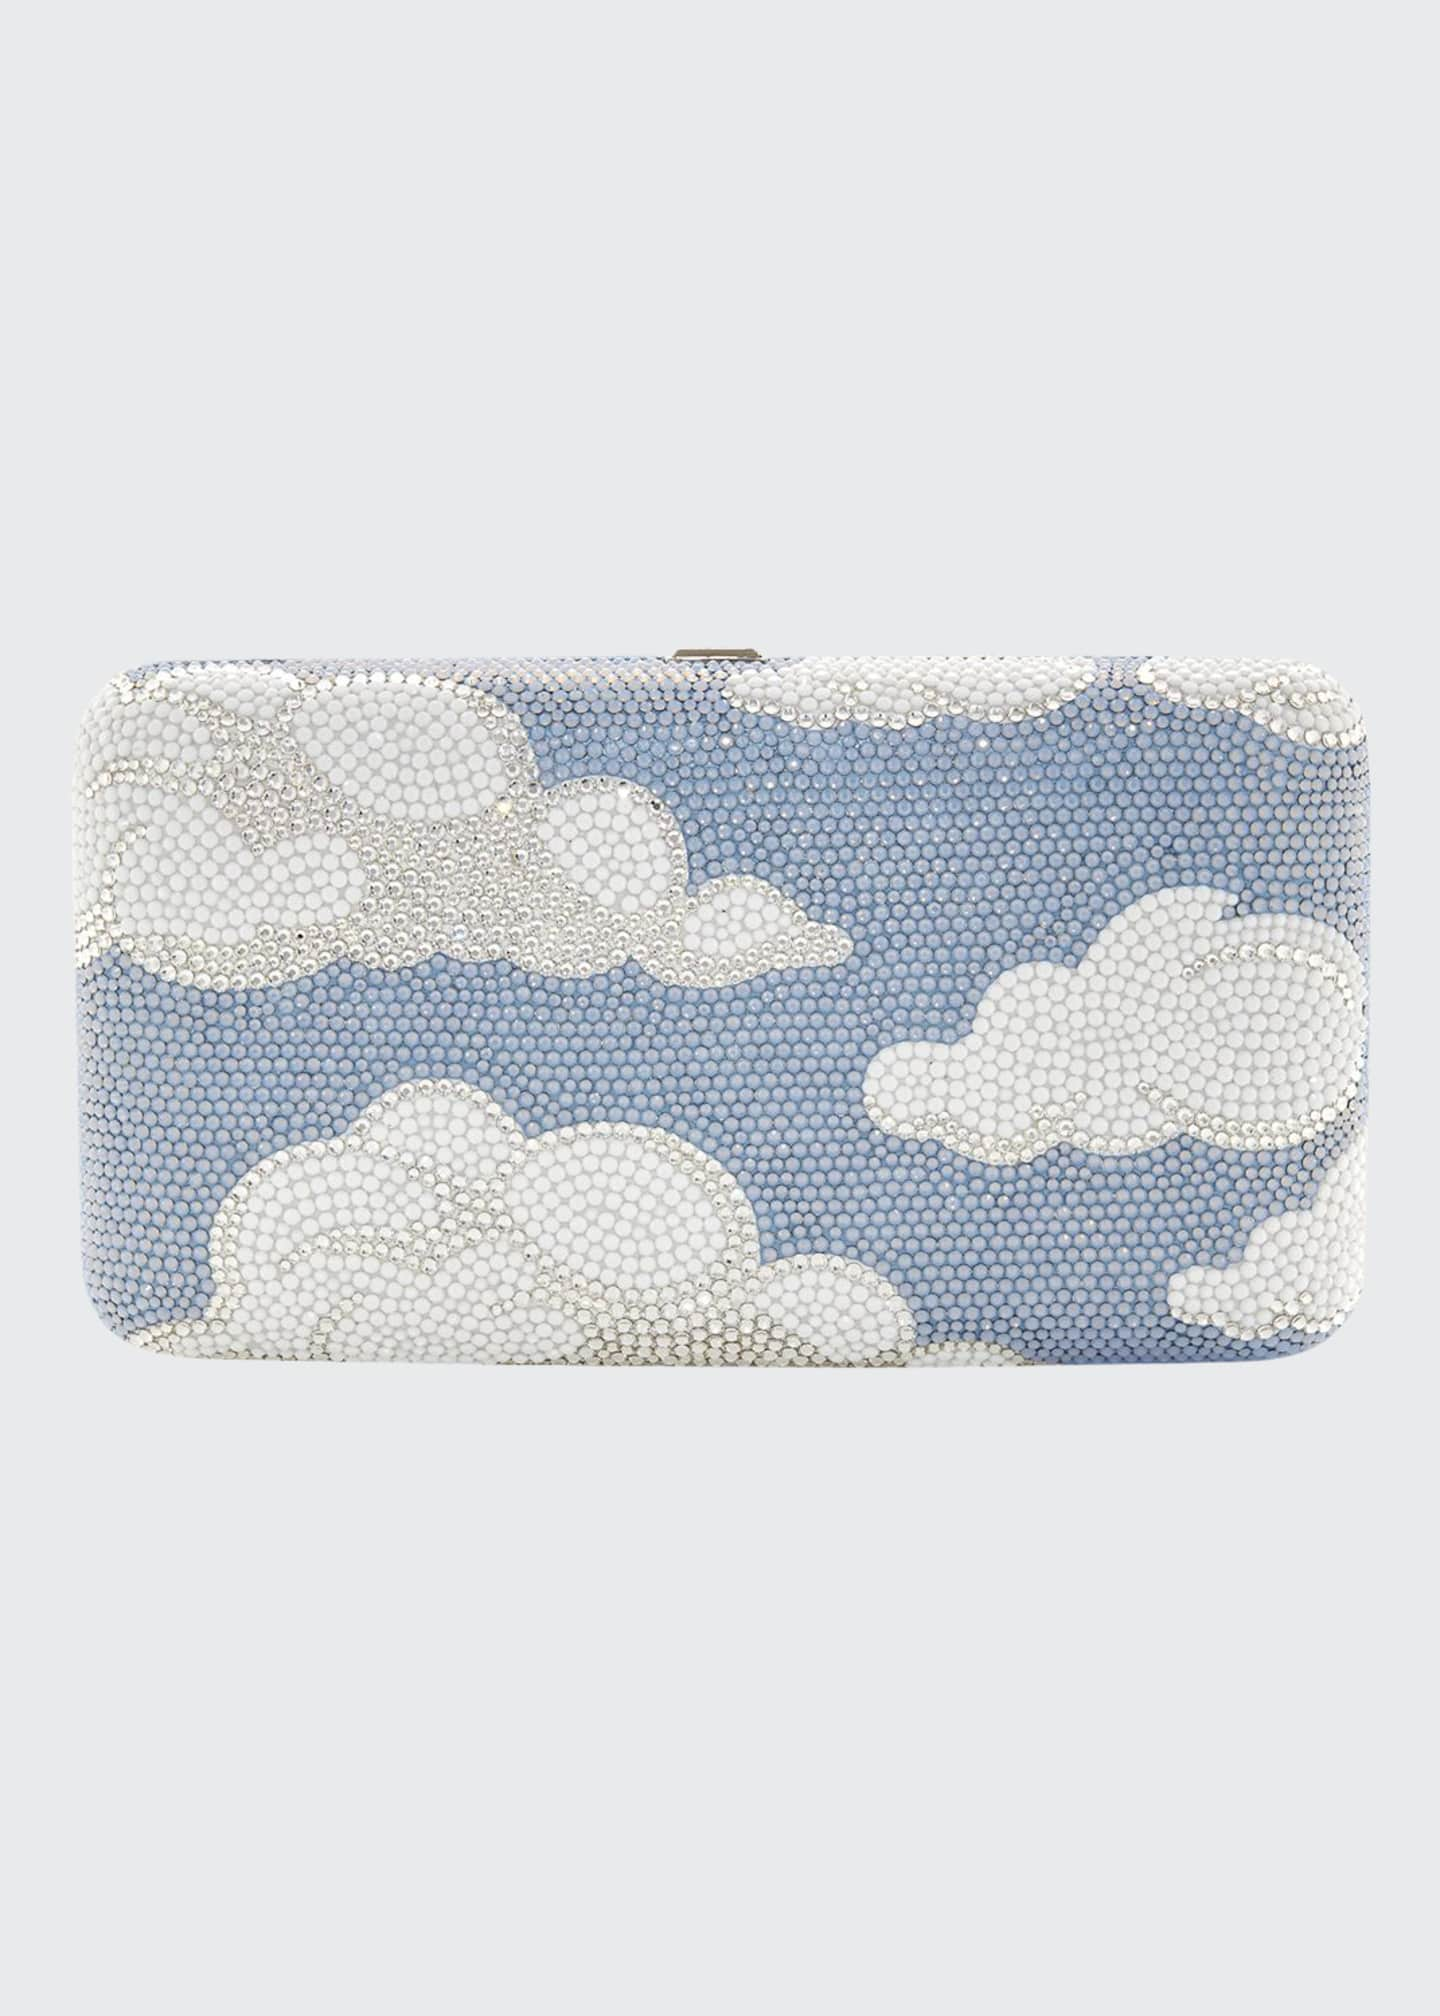 Judith Leiber Couture Clouds Smooth Rectangular Crystal Clutch